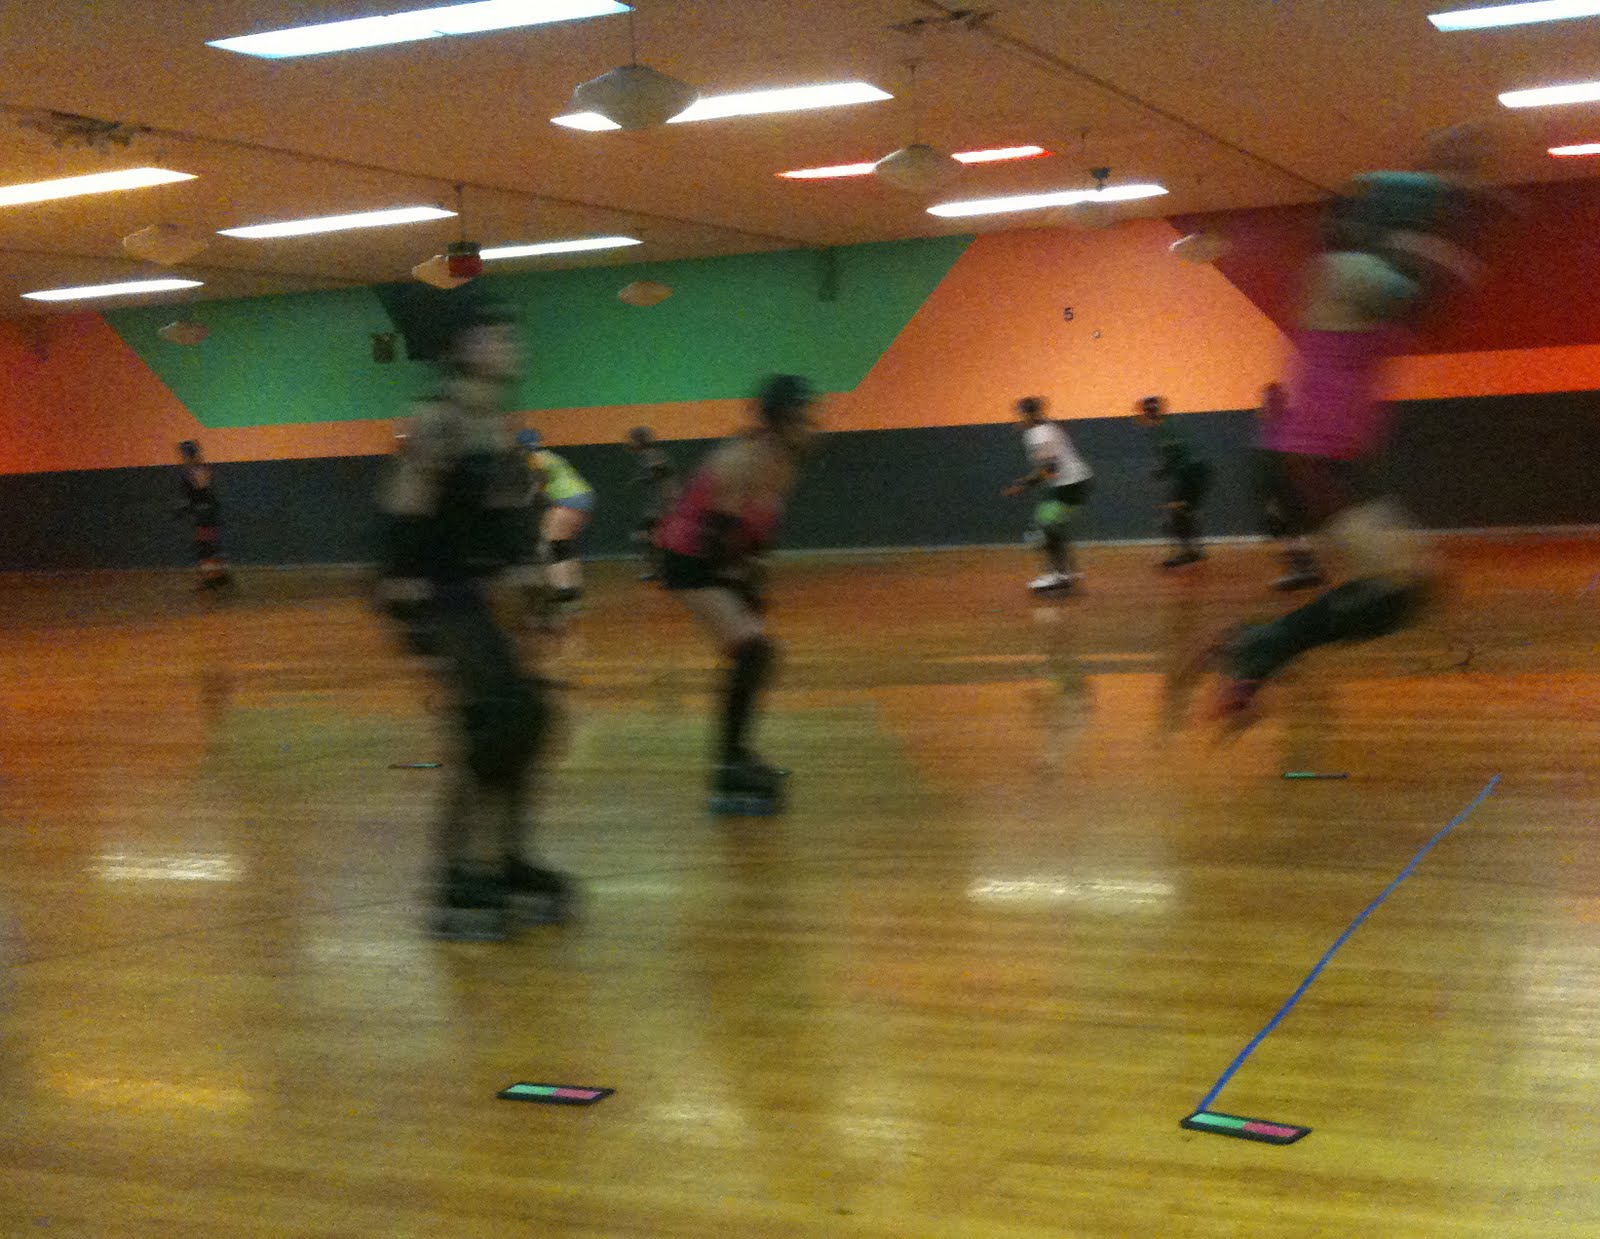 Roller skating rink westchester ny - Look At That Jumping Meat